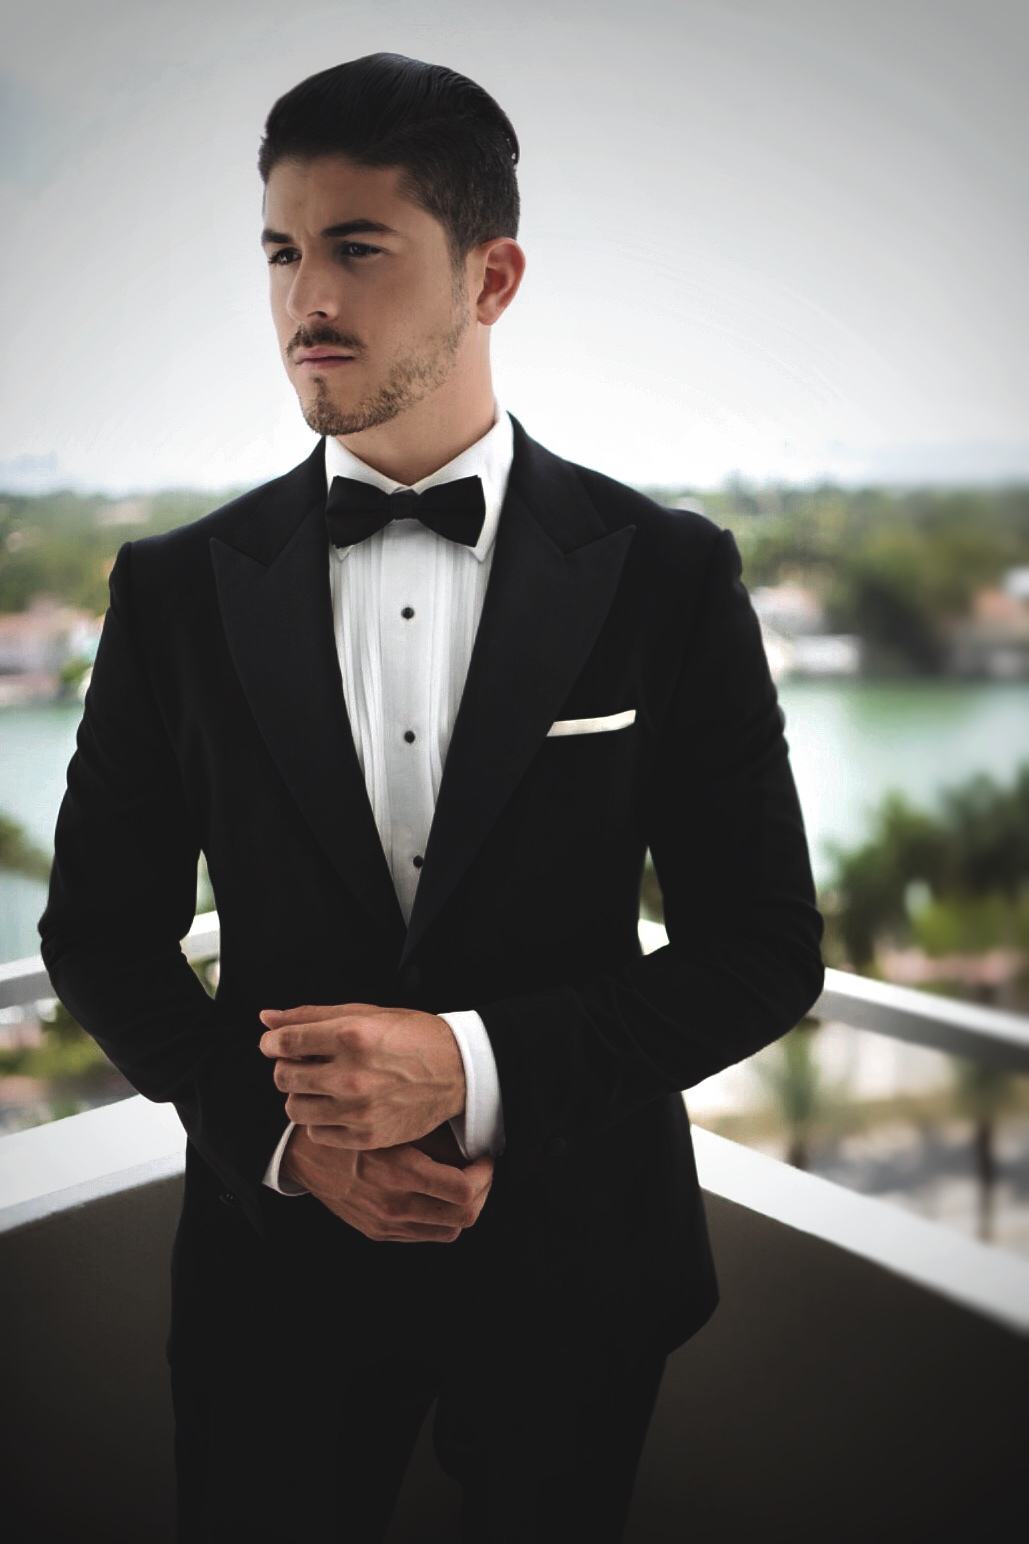 Wedding attire for grooms what to wear for your wedding for Wedding dress shirts for groom